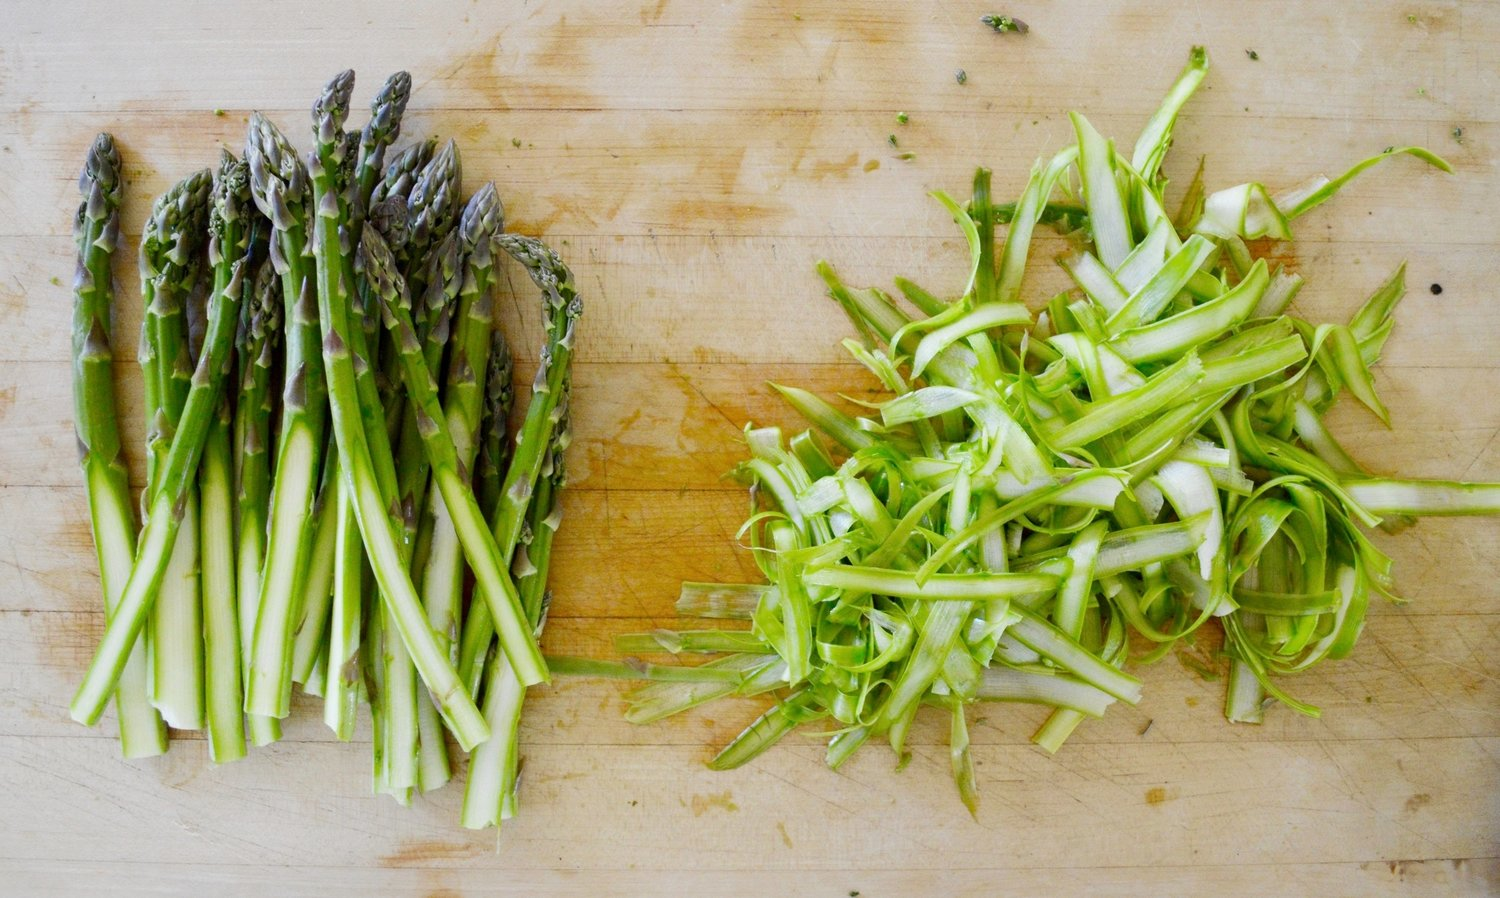 Ribboned asparagus for garnish